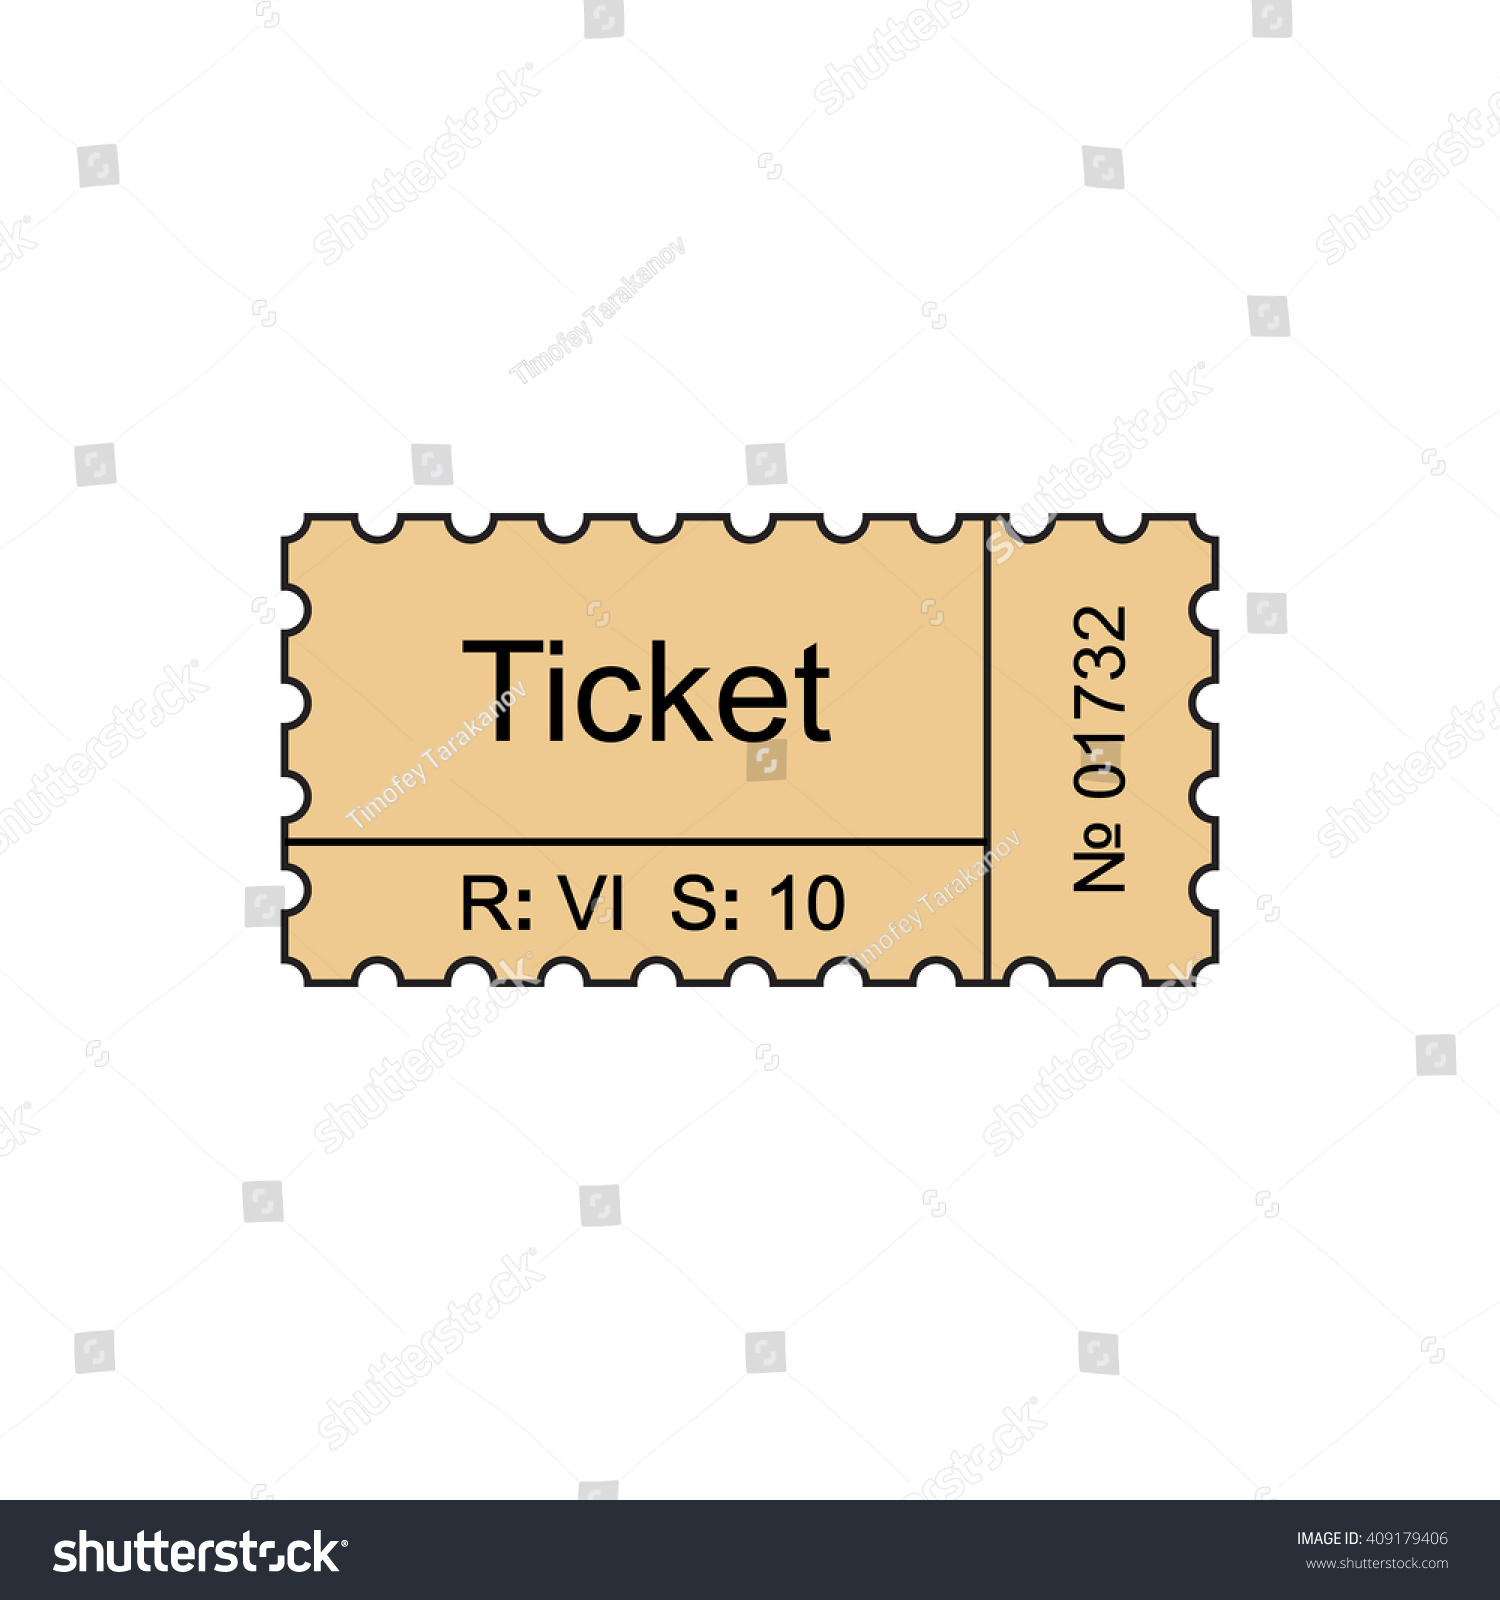 ticket outline icon stock vector shutterstock ticket outline icon